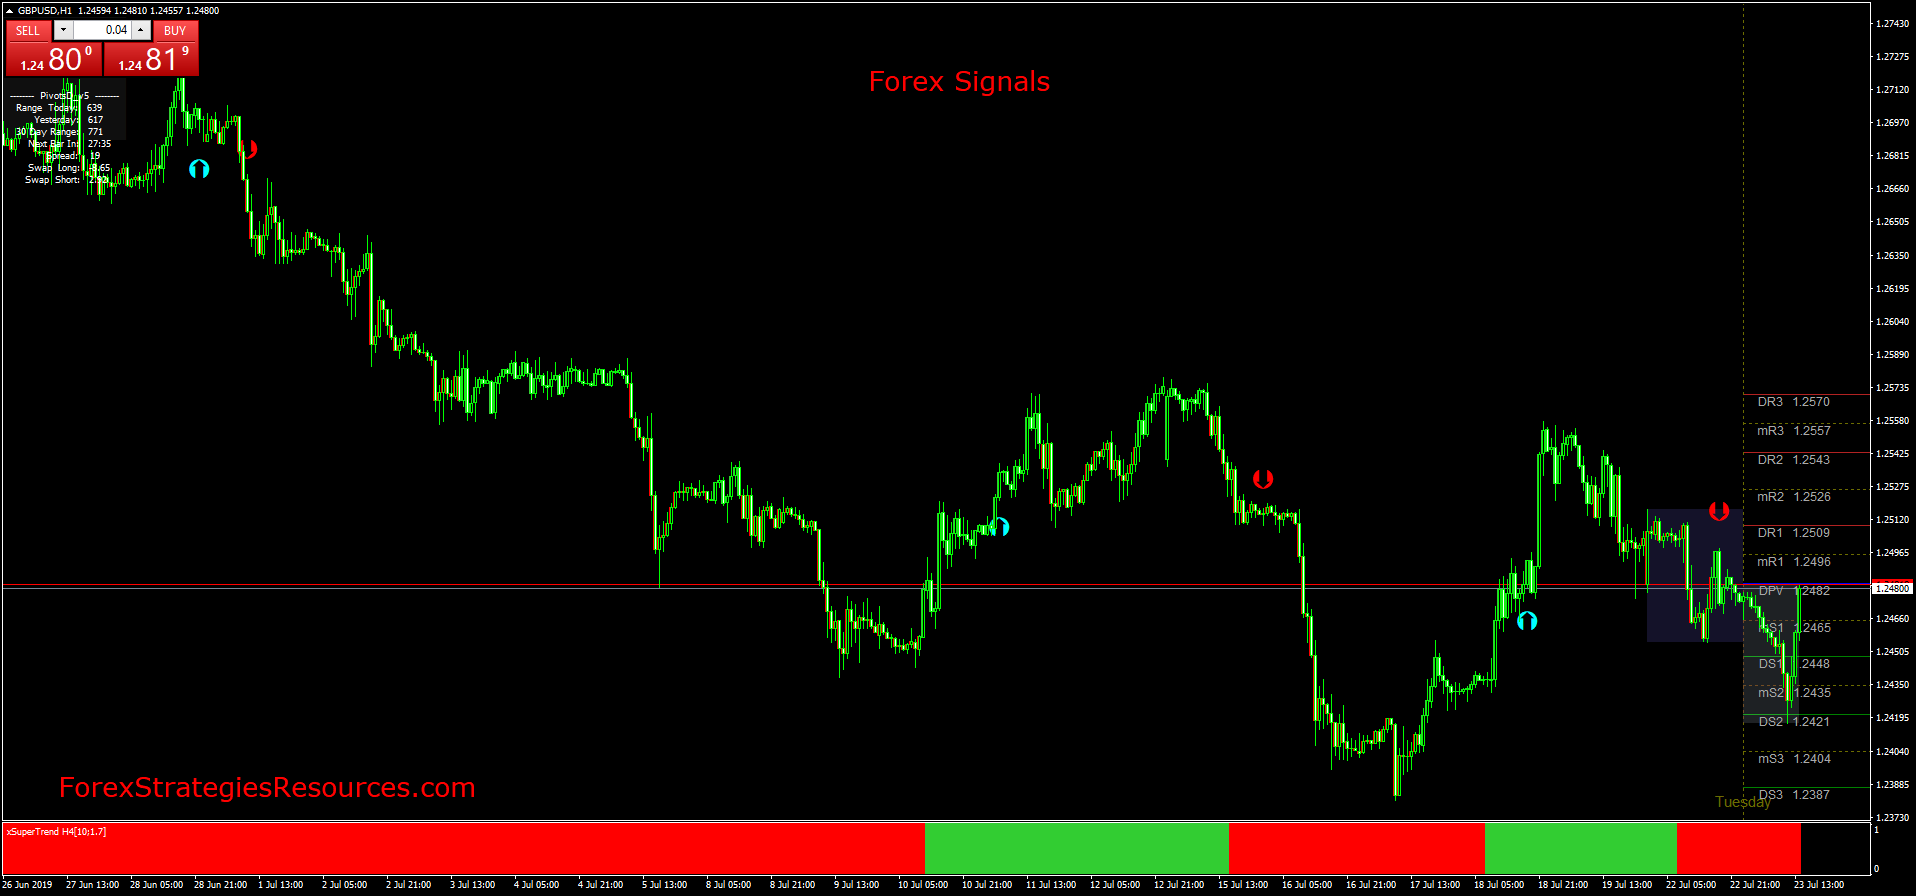 Free daily forex signals forecast usd forex news xe